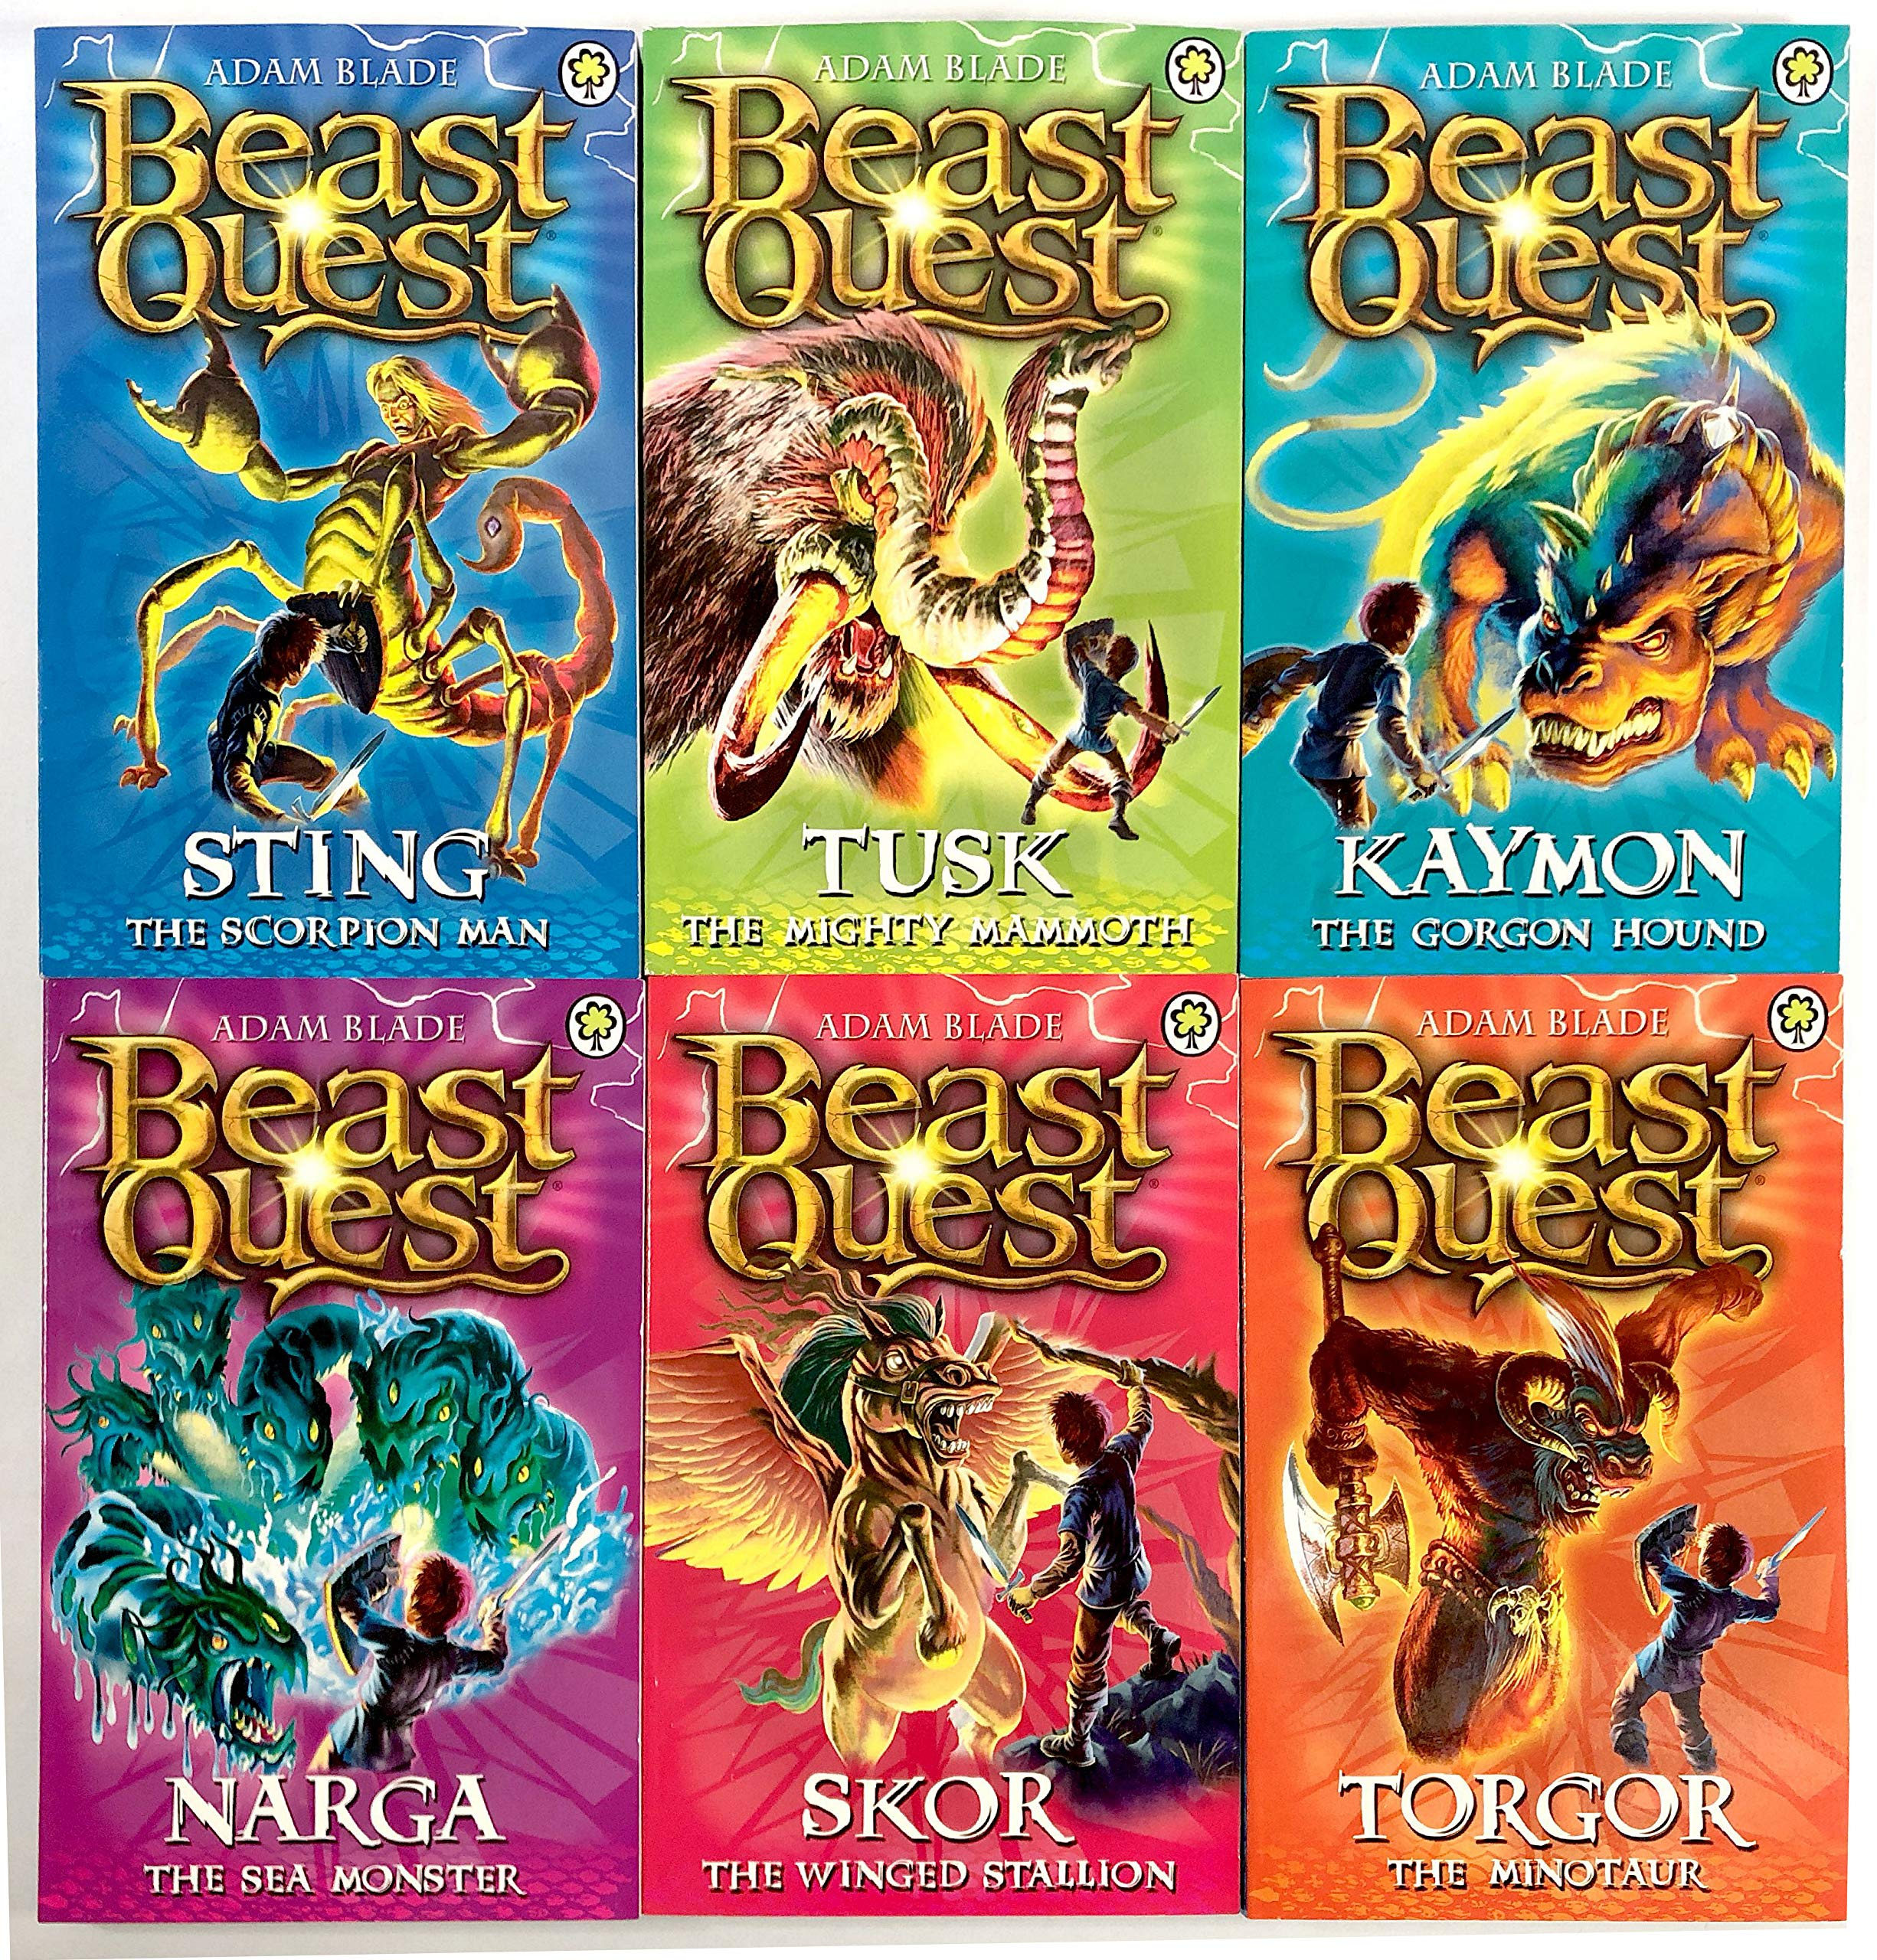 Beast Quest Box Set Series 3 The Dark Realm 6 Books Collection Set Books 13 18 Amazon Co Uk Adam Blade 9783200330870 Books